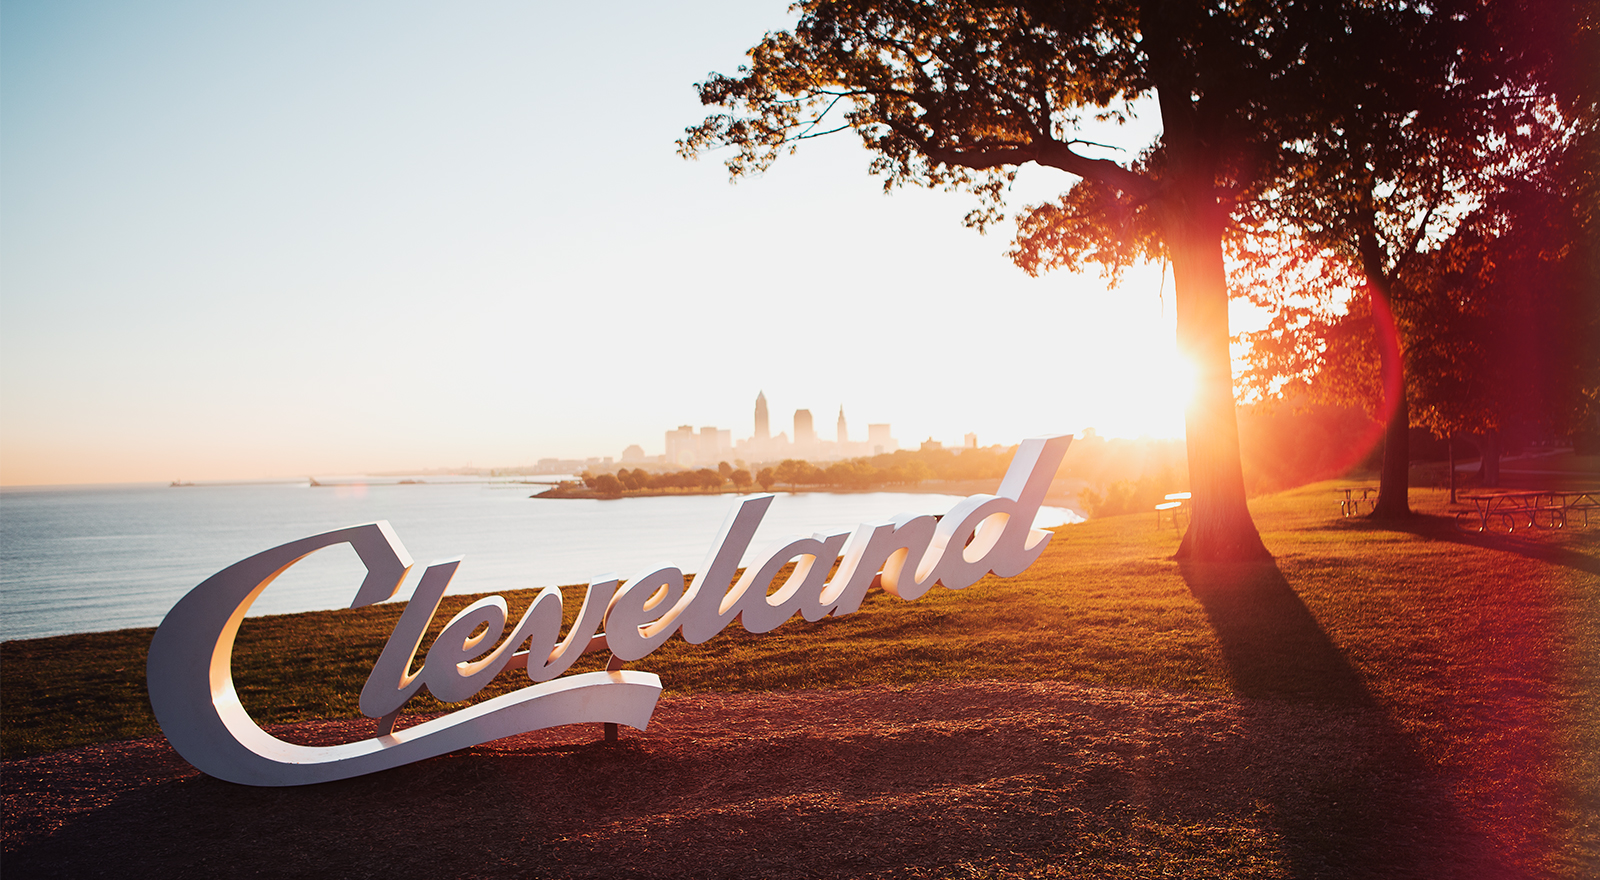 Cleveland logo structure